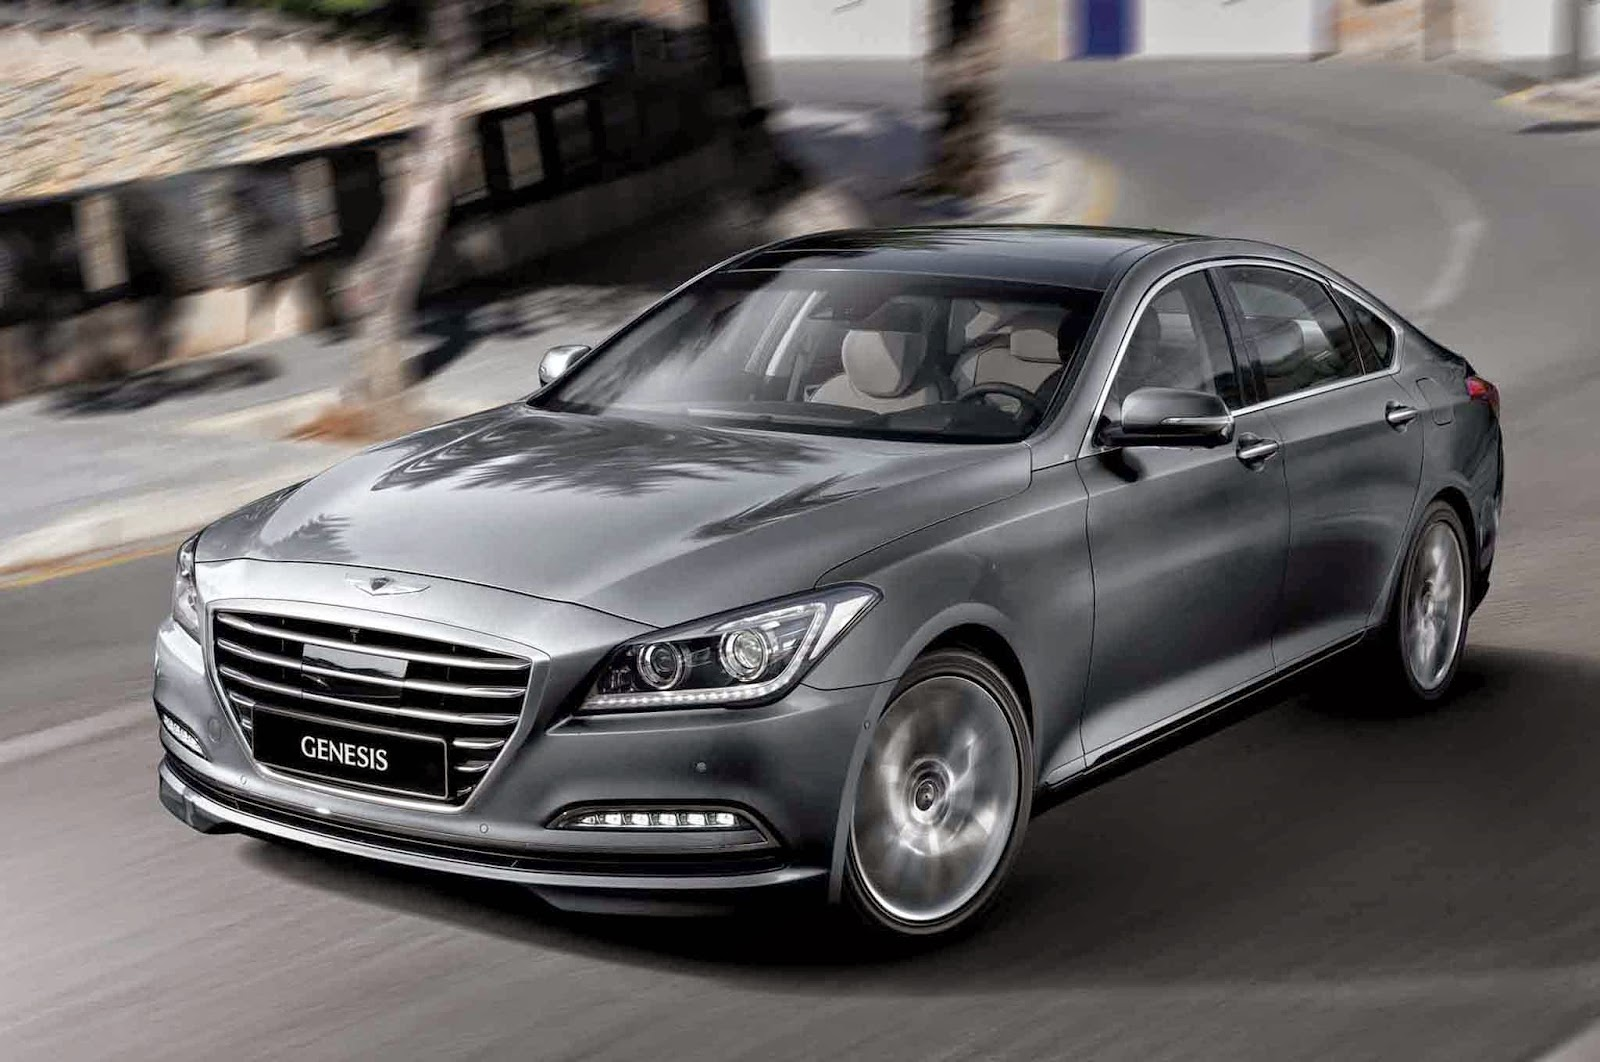 This time around hyundai knows that intangibles make all the difference in the realm of luxury sedans where all the cars